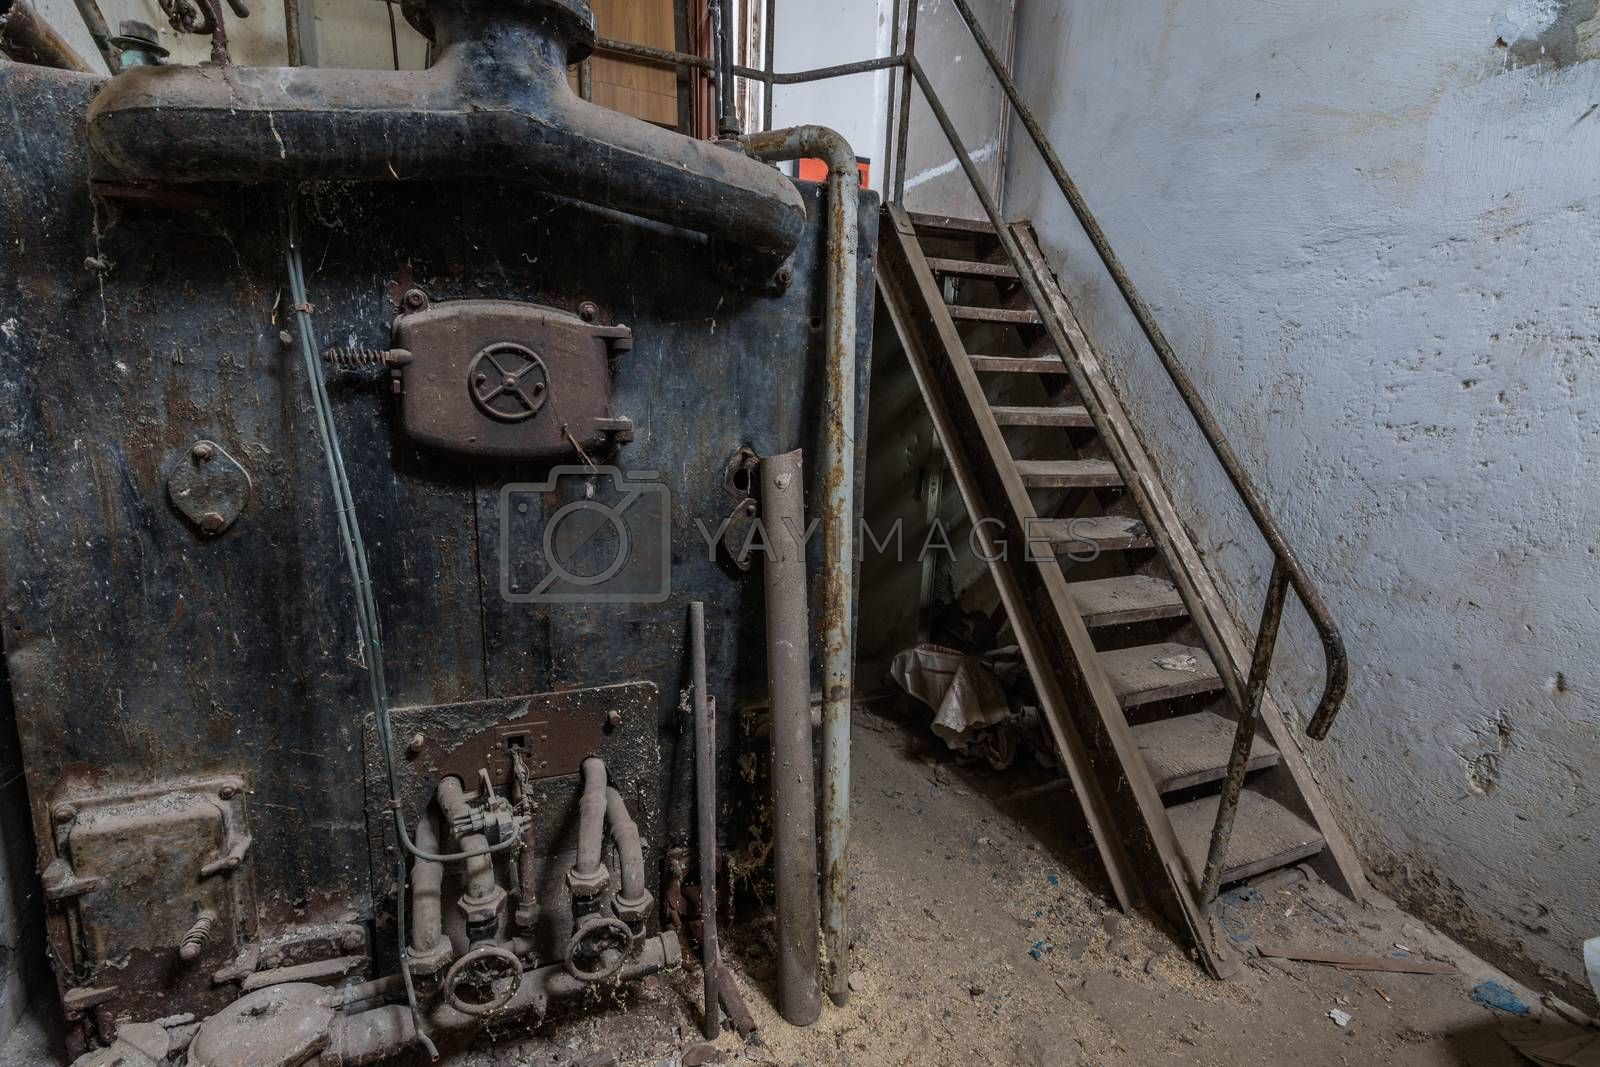 Rusty oven and stairs in a cellar of a house